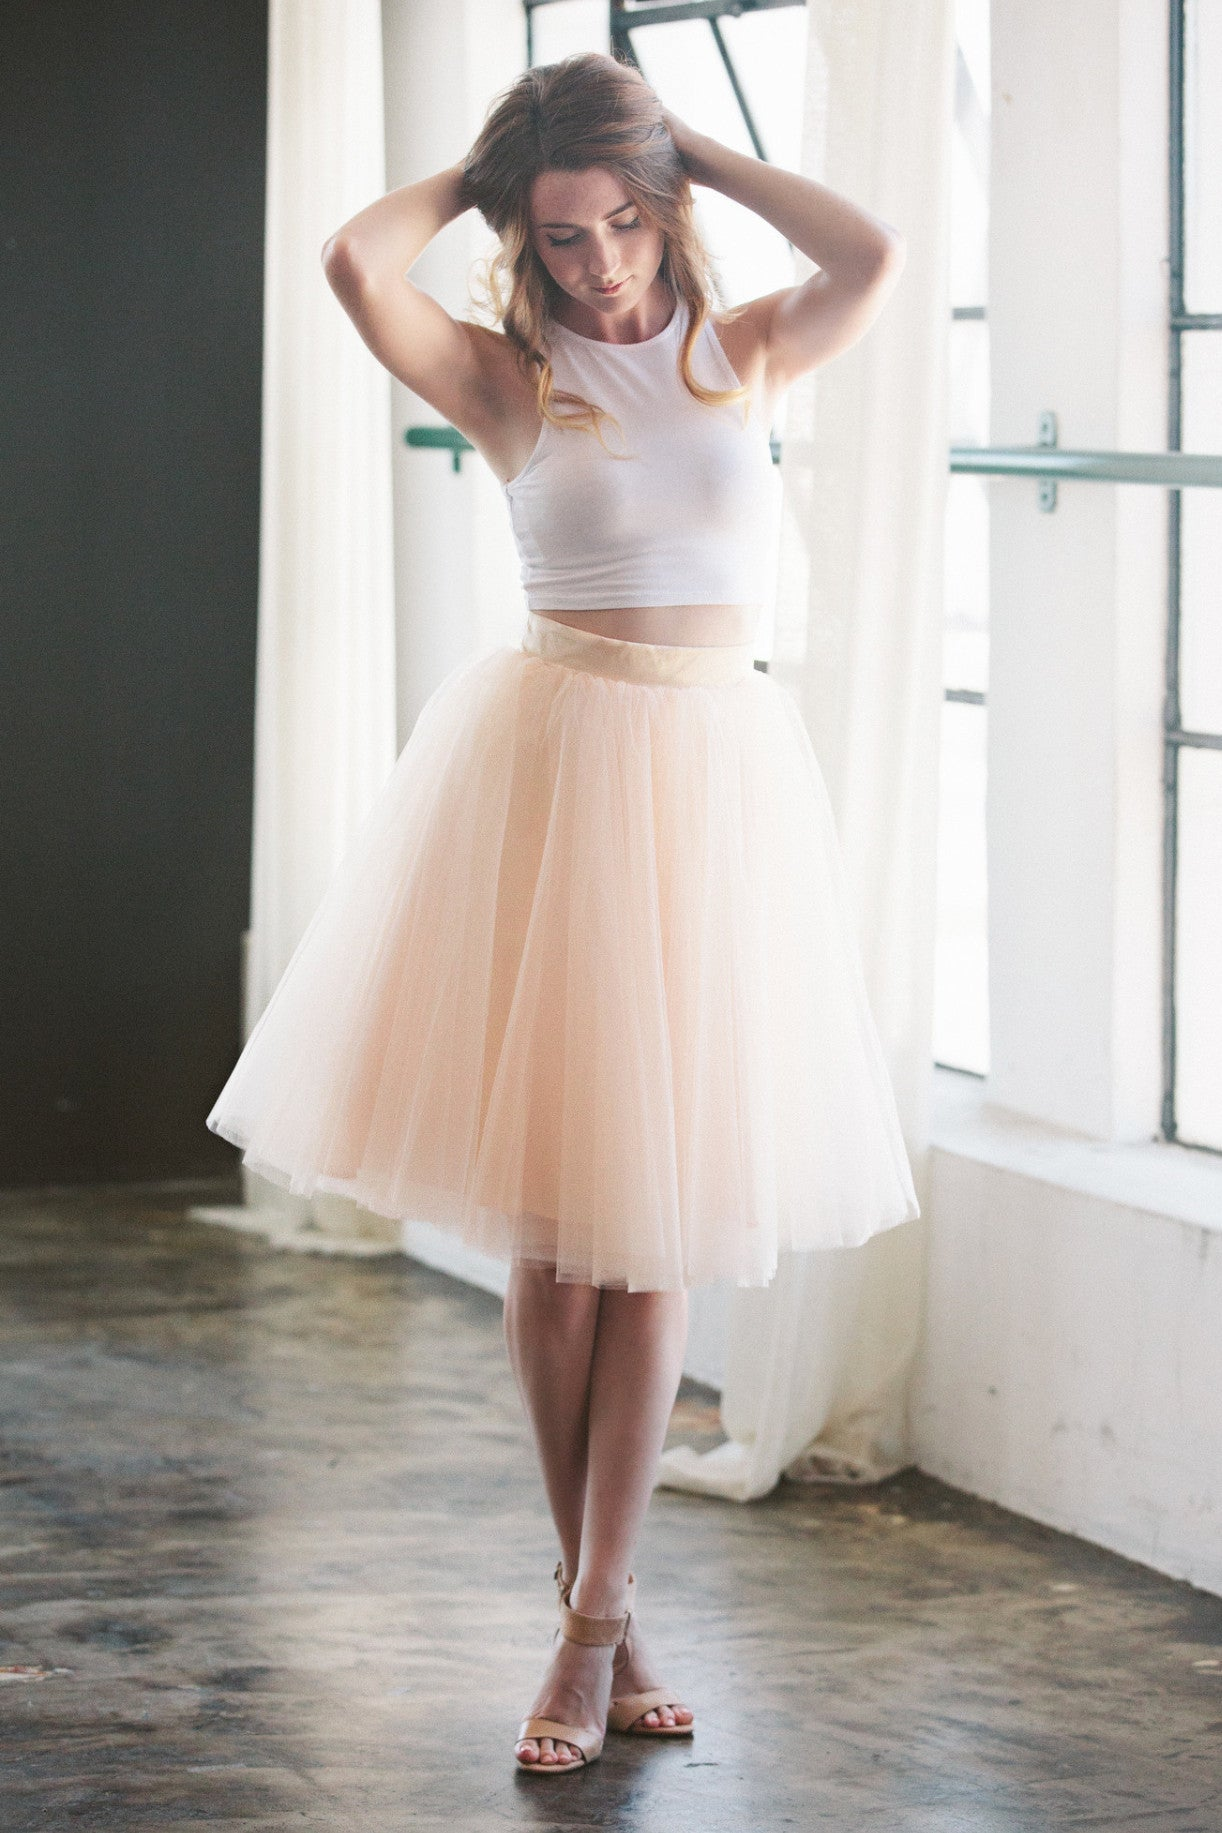 These 8 Tulle Skirts Will Make You Feel Like A Princess